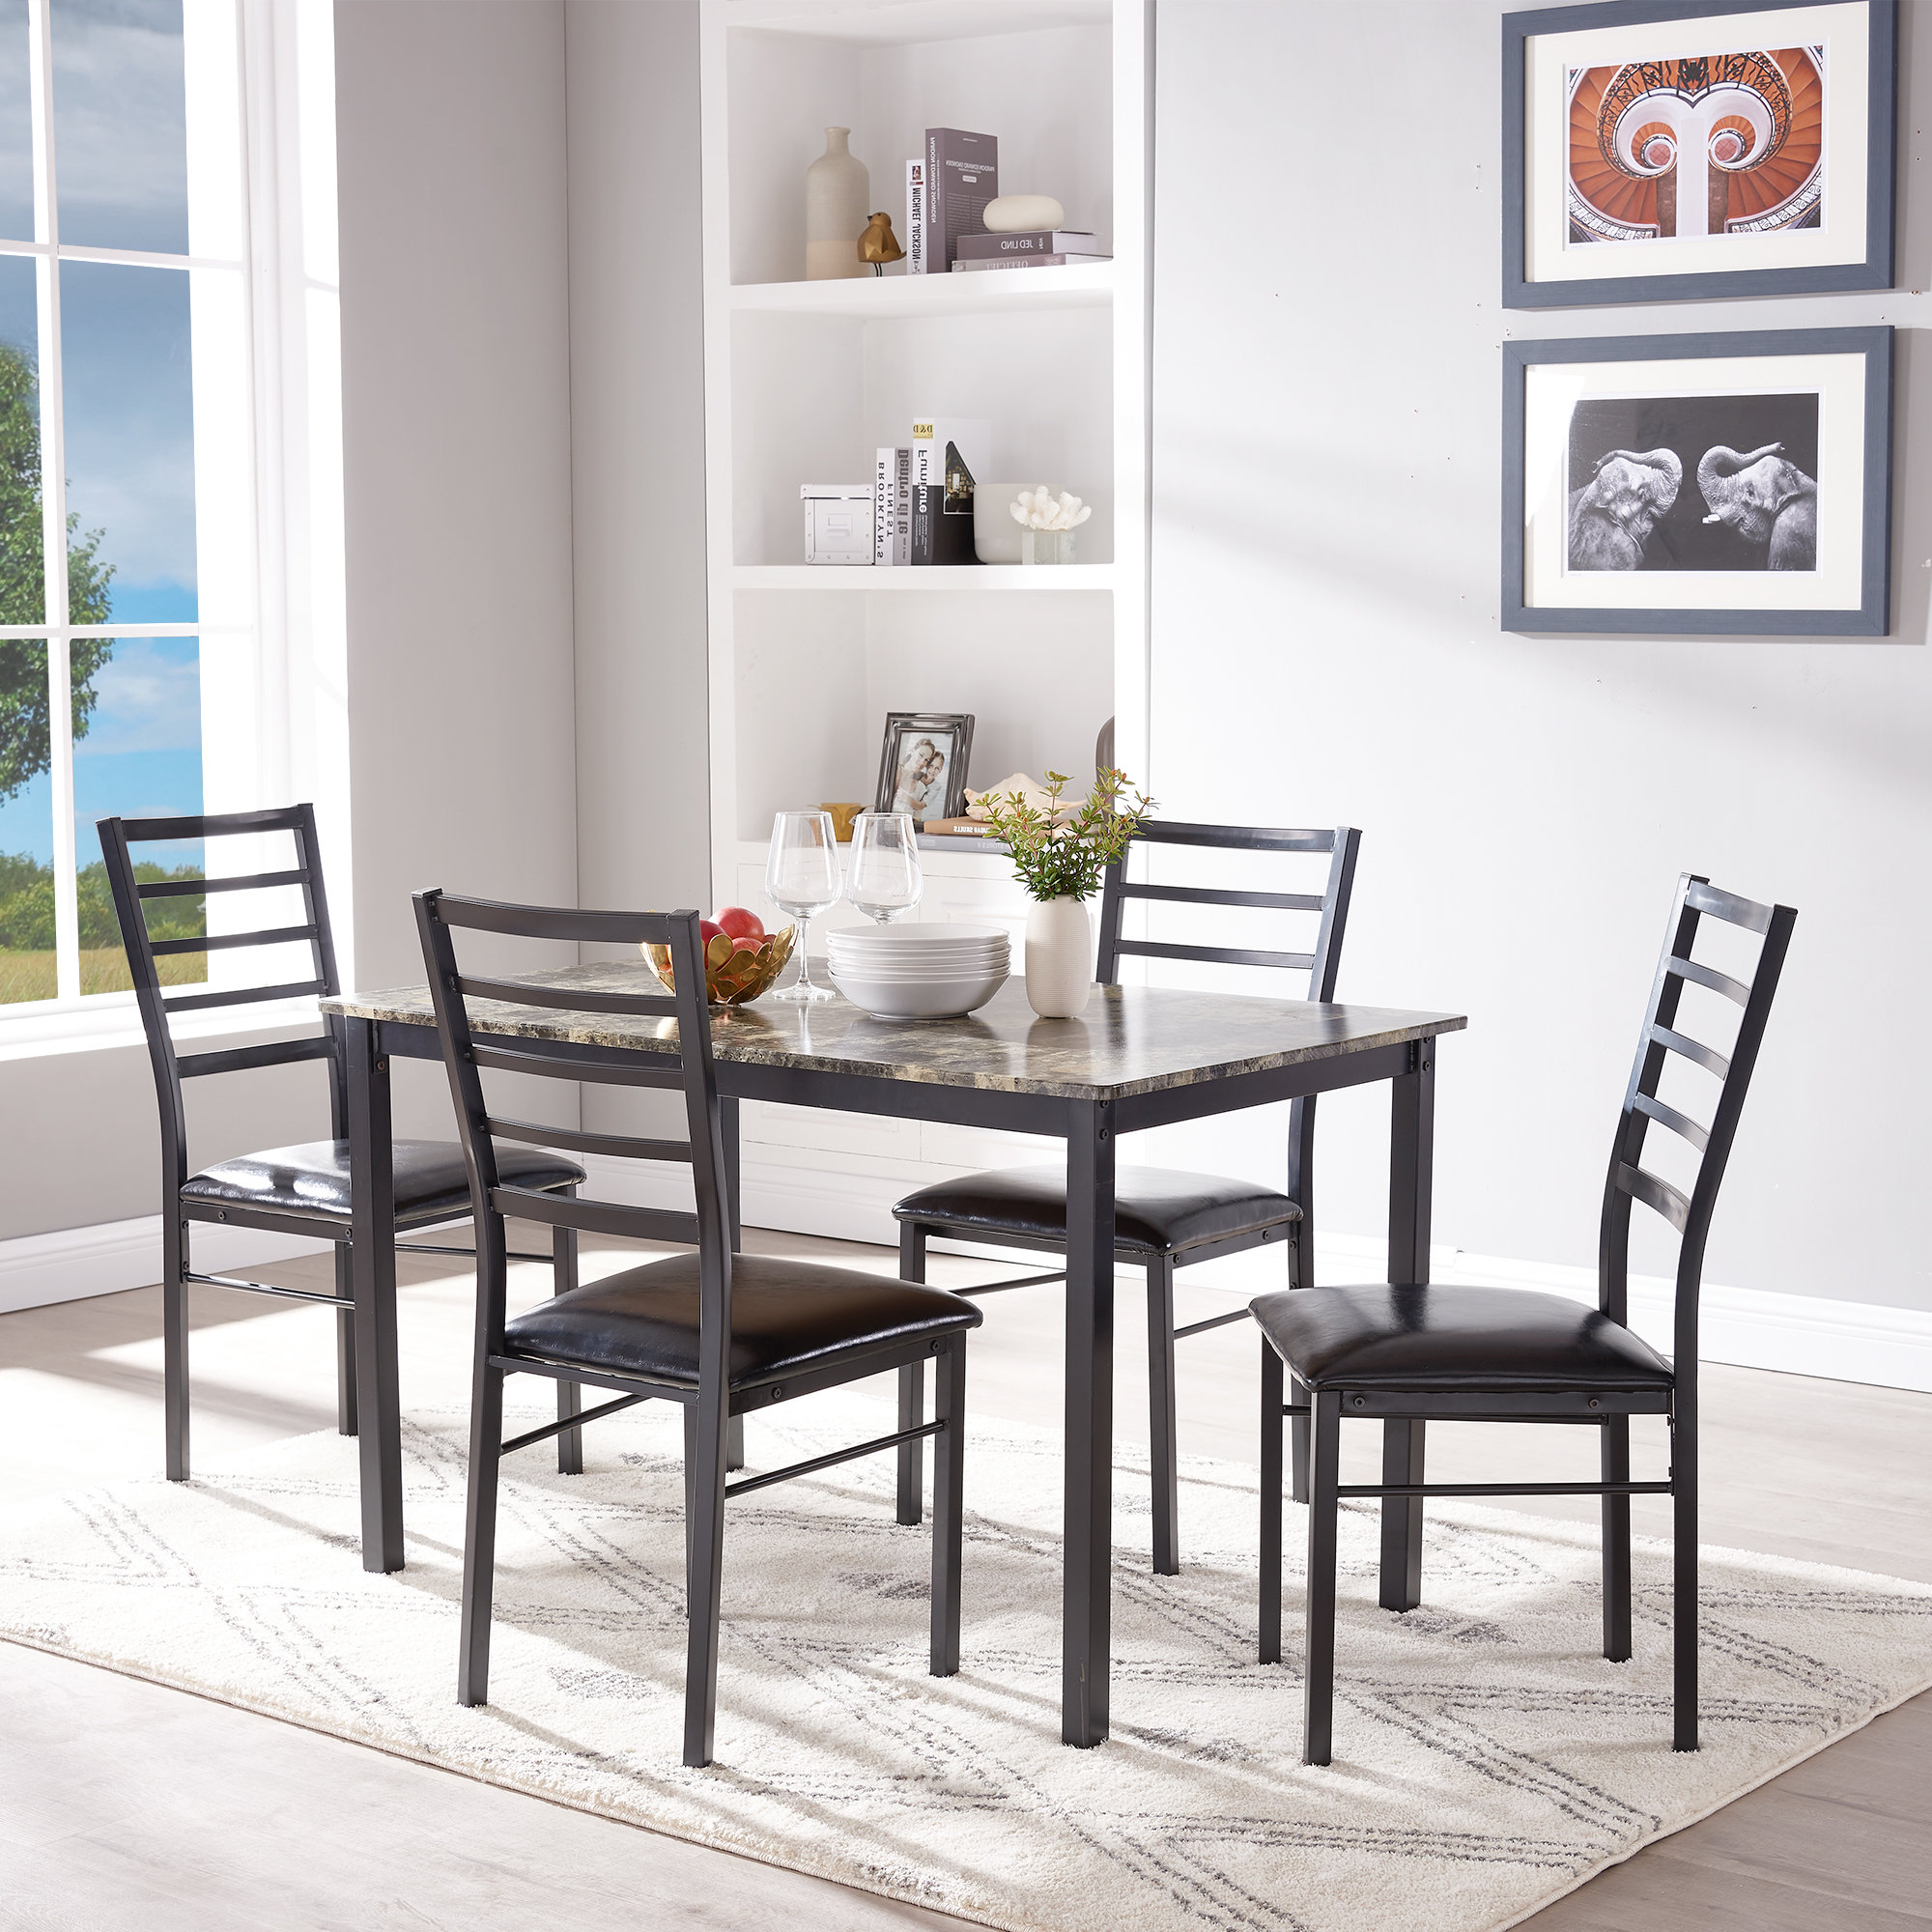 Ebay regarding Most Current Casiano 5 Piece Dining Sets